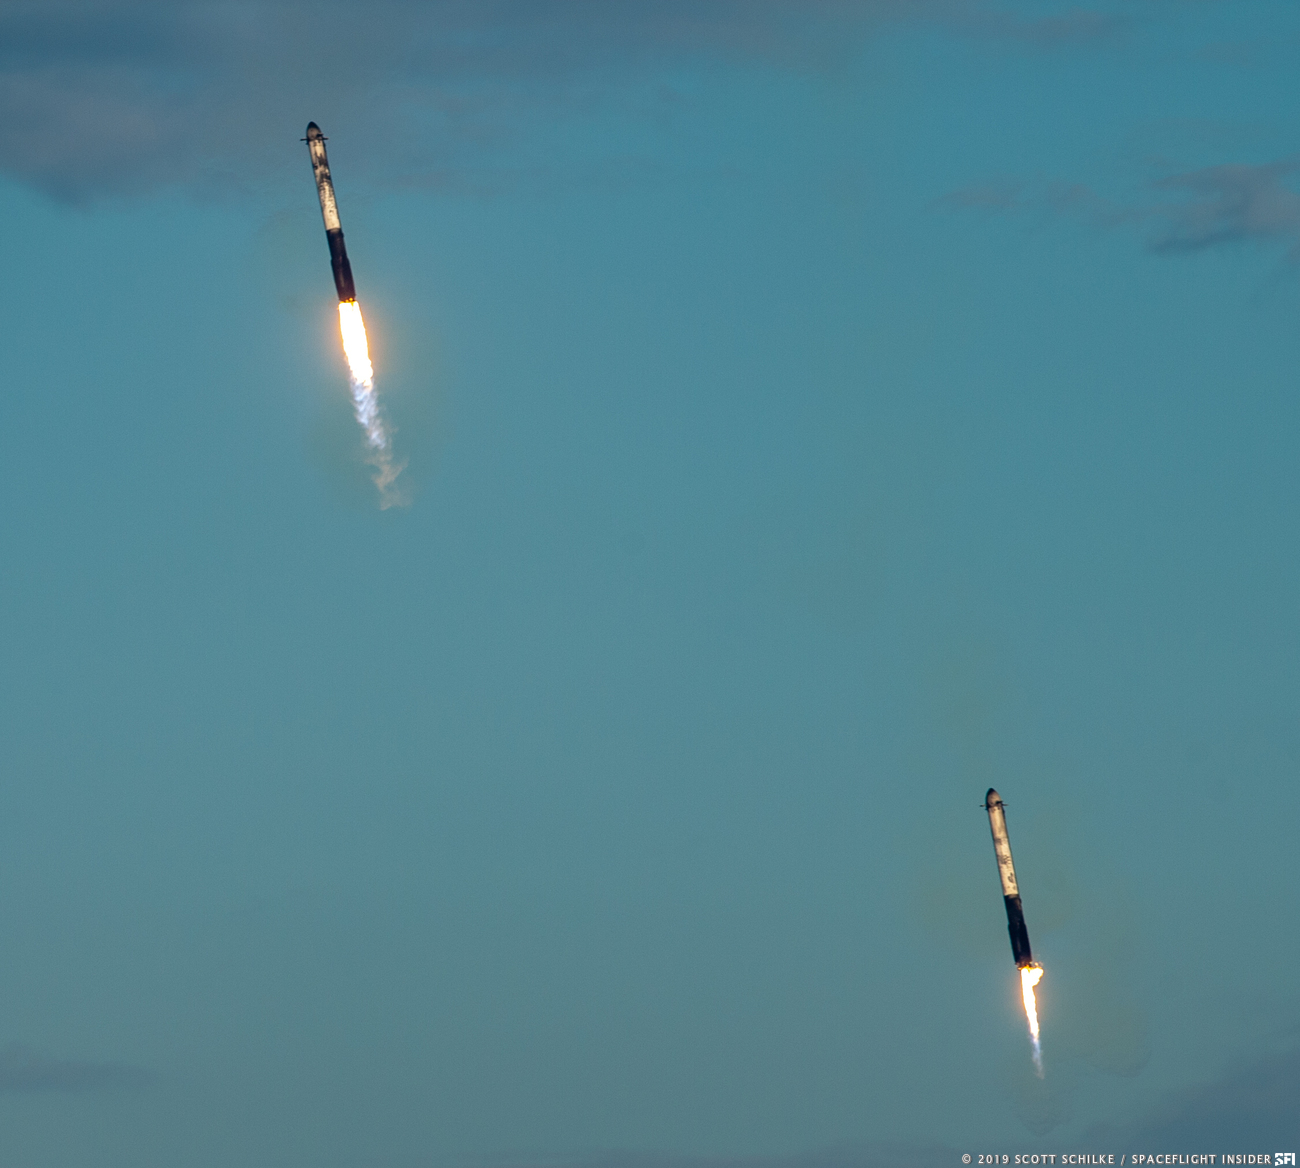 Arabsat-6A saw all three FH first stages land safely. Photo Credit: Scott Schilke / SpaceFlight Insider